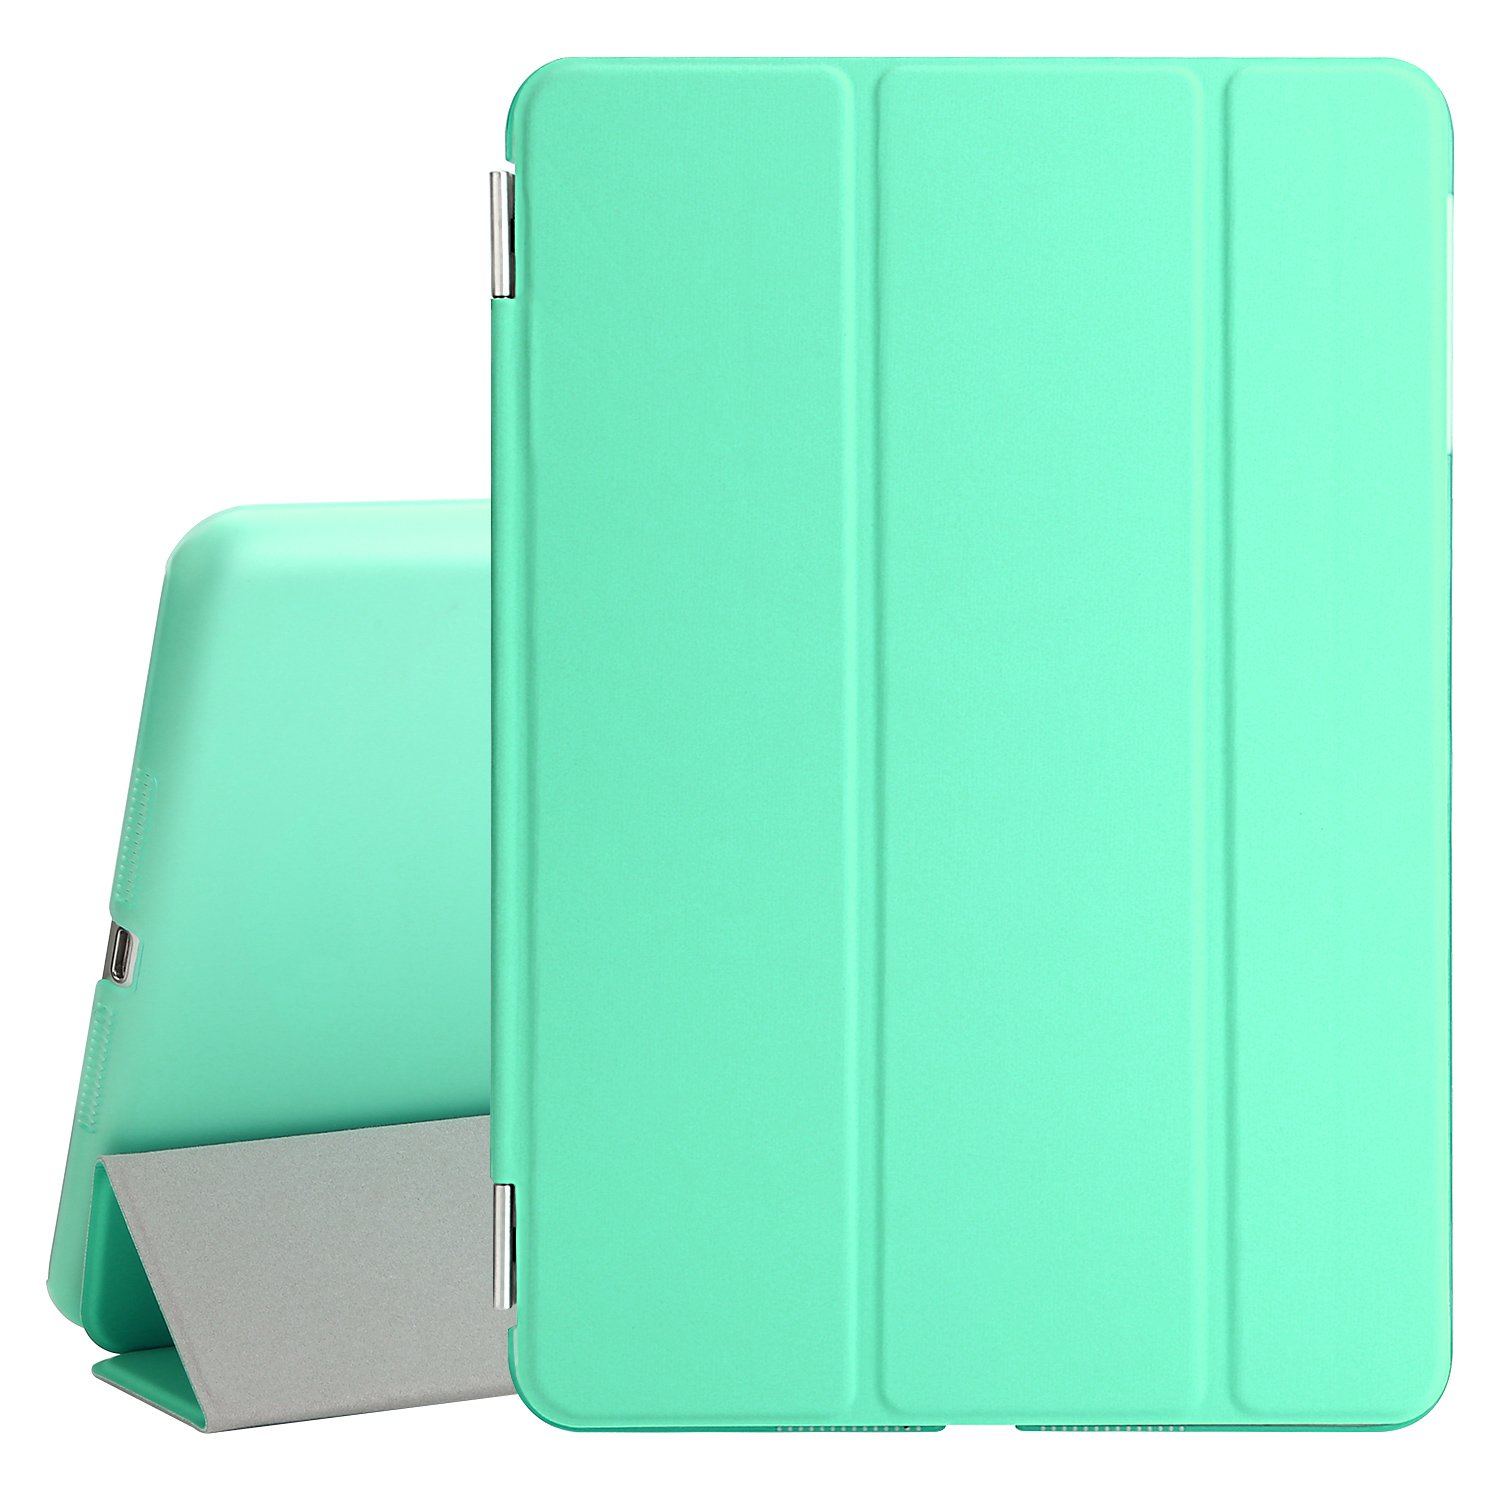 BESDATA Ultra Thin Magnetic Smart Cover (Wake/Sleep Function) & Clear Back Case for Apple iPad Mini 2 / Mini 3 (with Retina Display) + Screen Protector + Cleaning Cloth + Stylus (Mint Green)